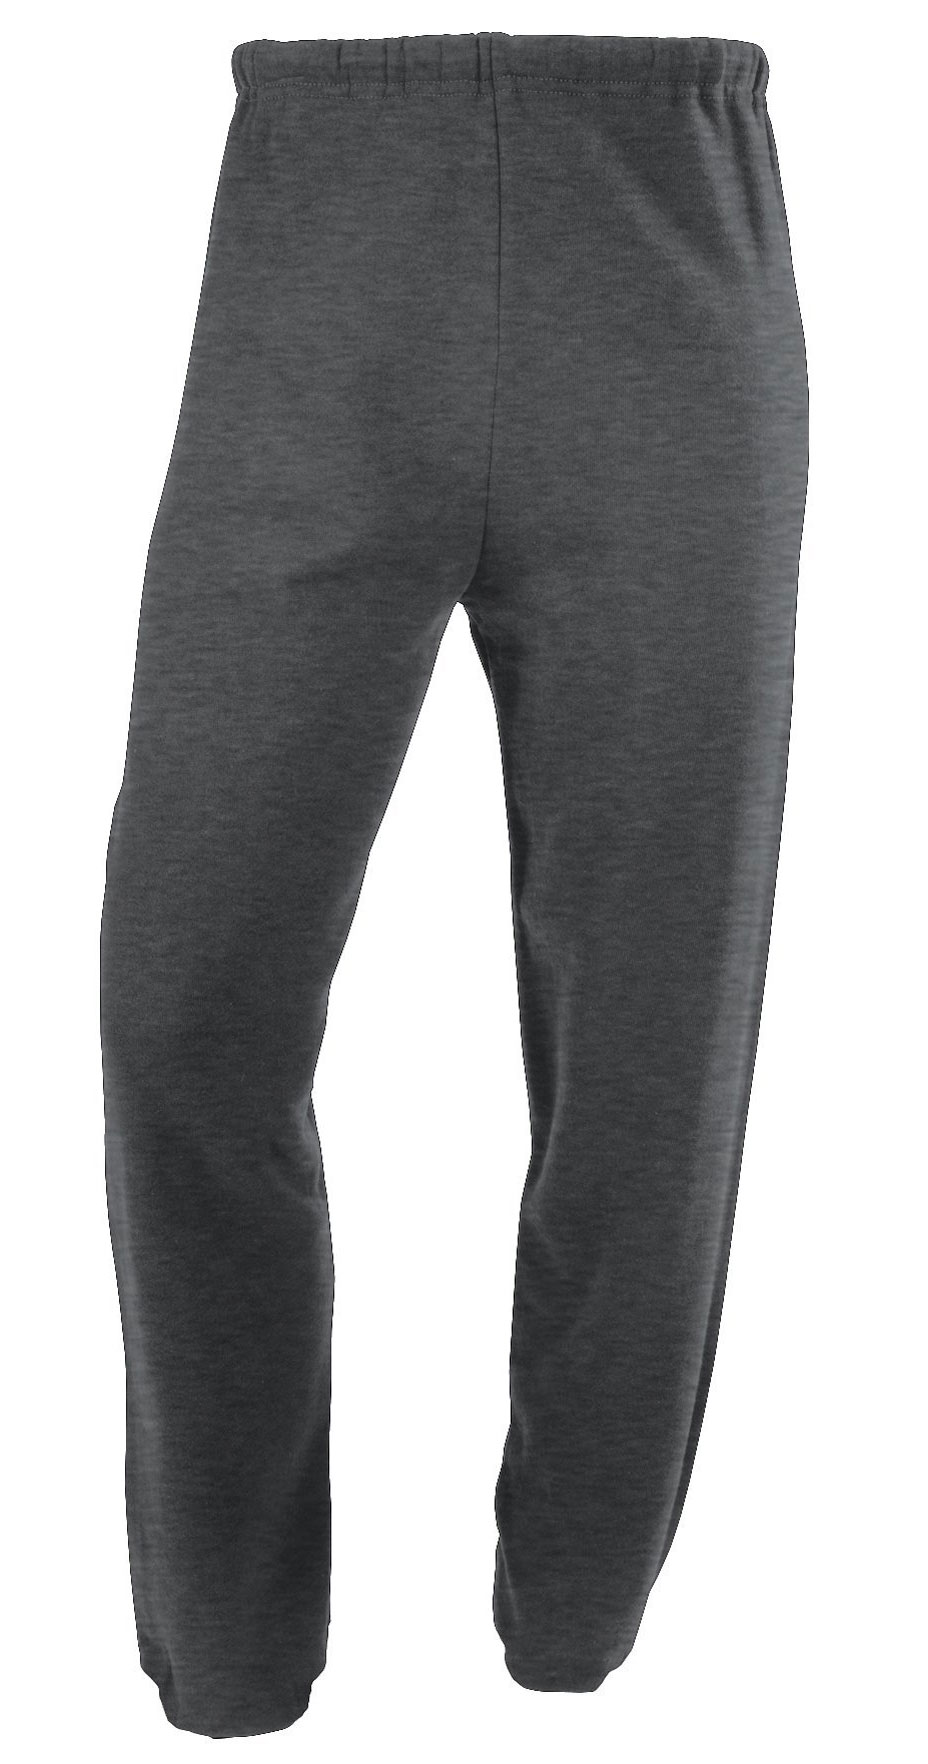 Dri-Power Closed-Bottom Fleece Pant by Russell Athletic